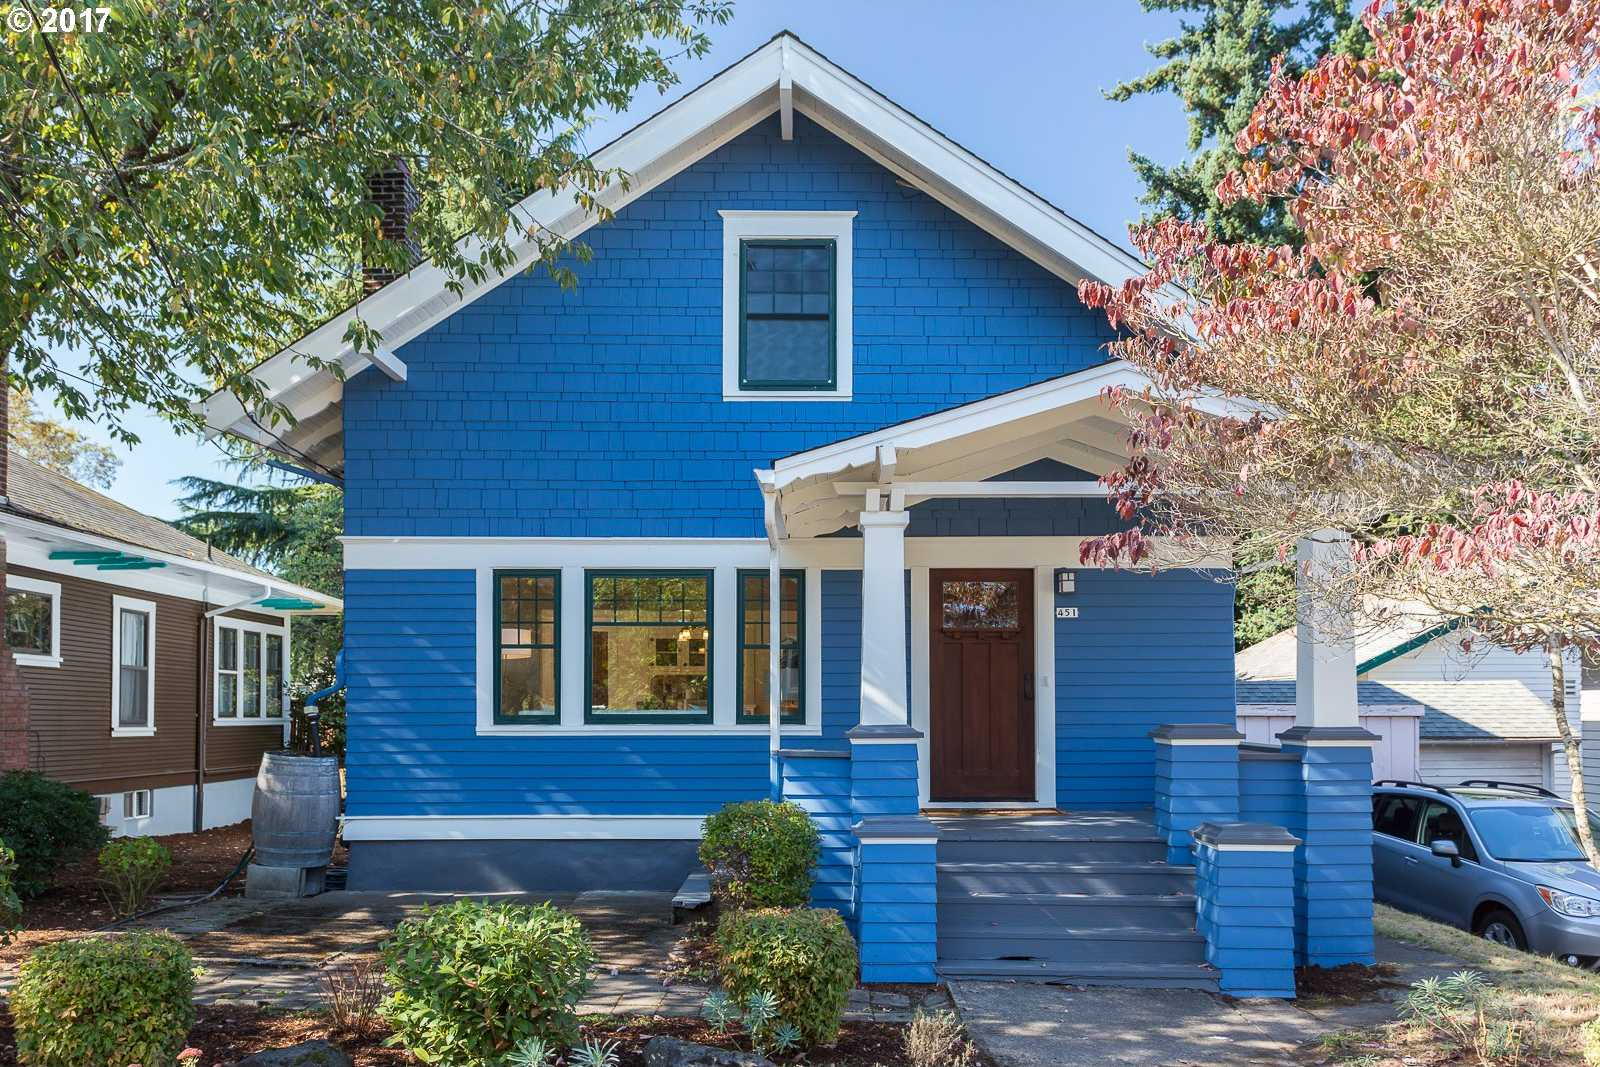 $549,000 - 4Br/2Ba -  for Sale in North Tabor, Portland